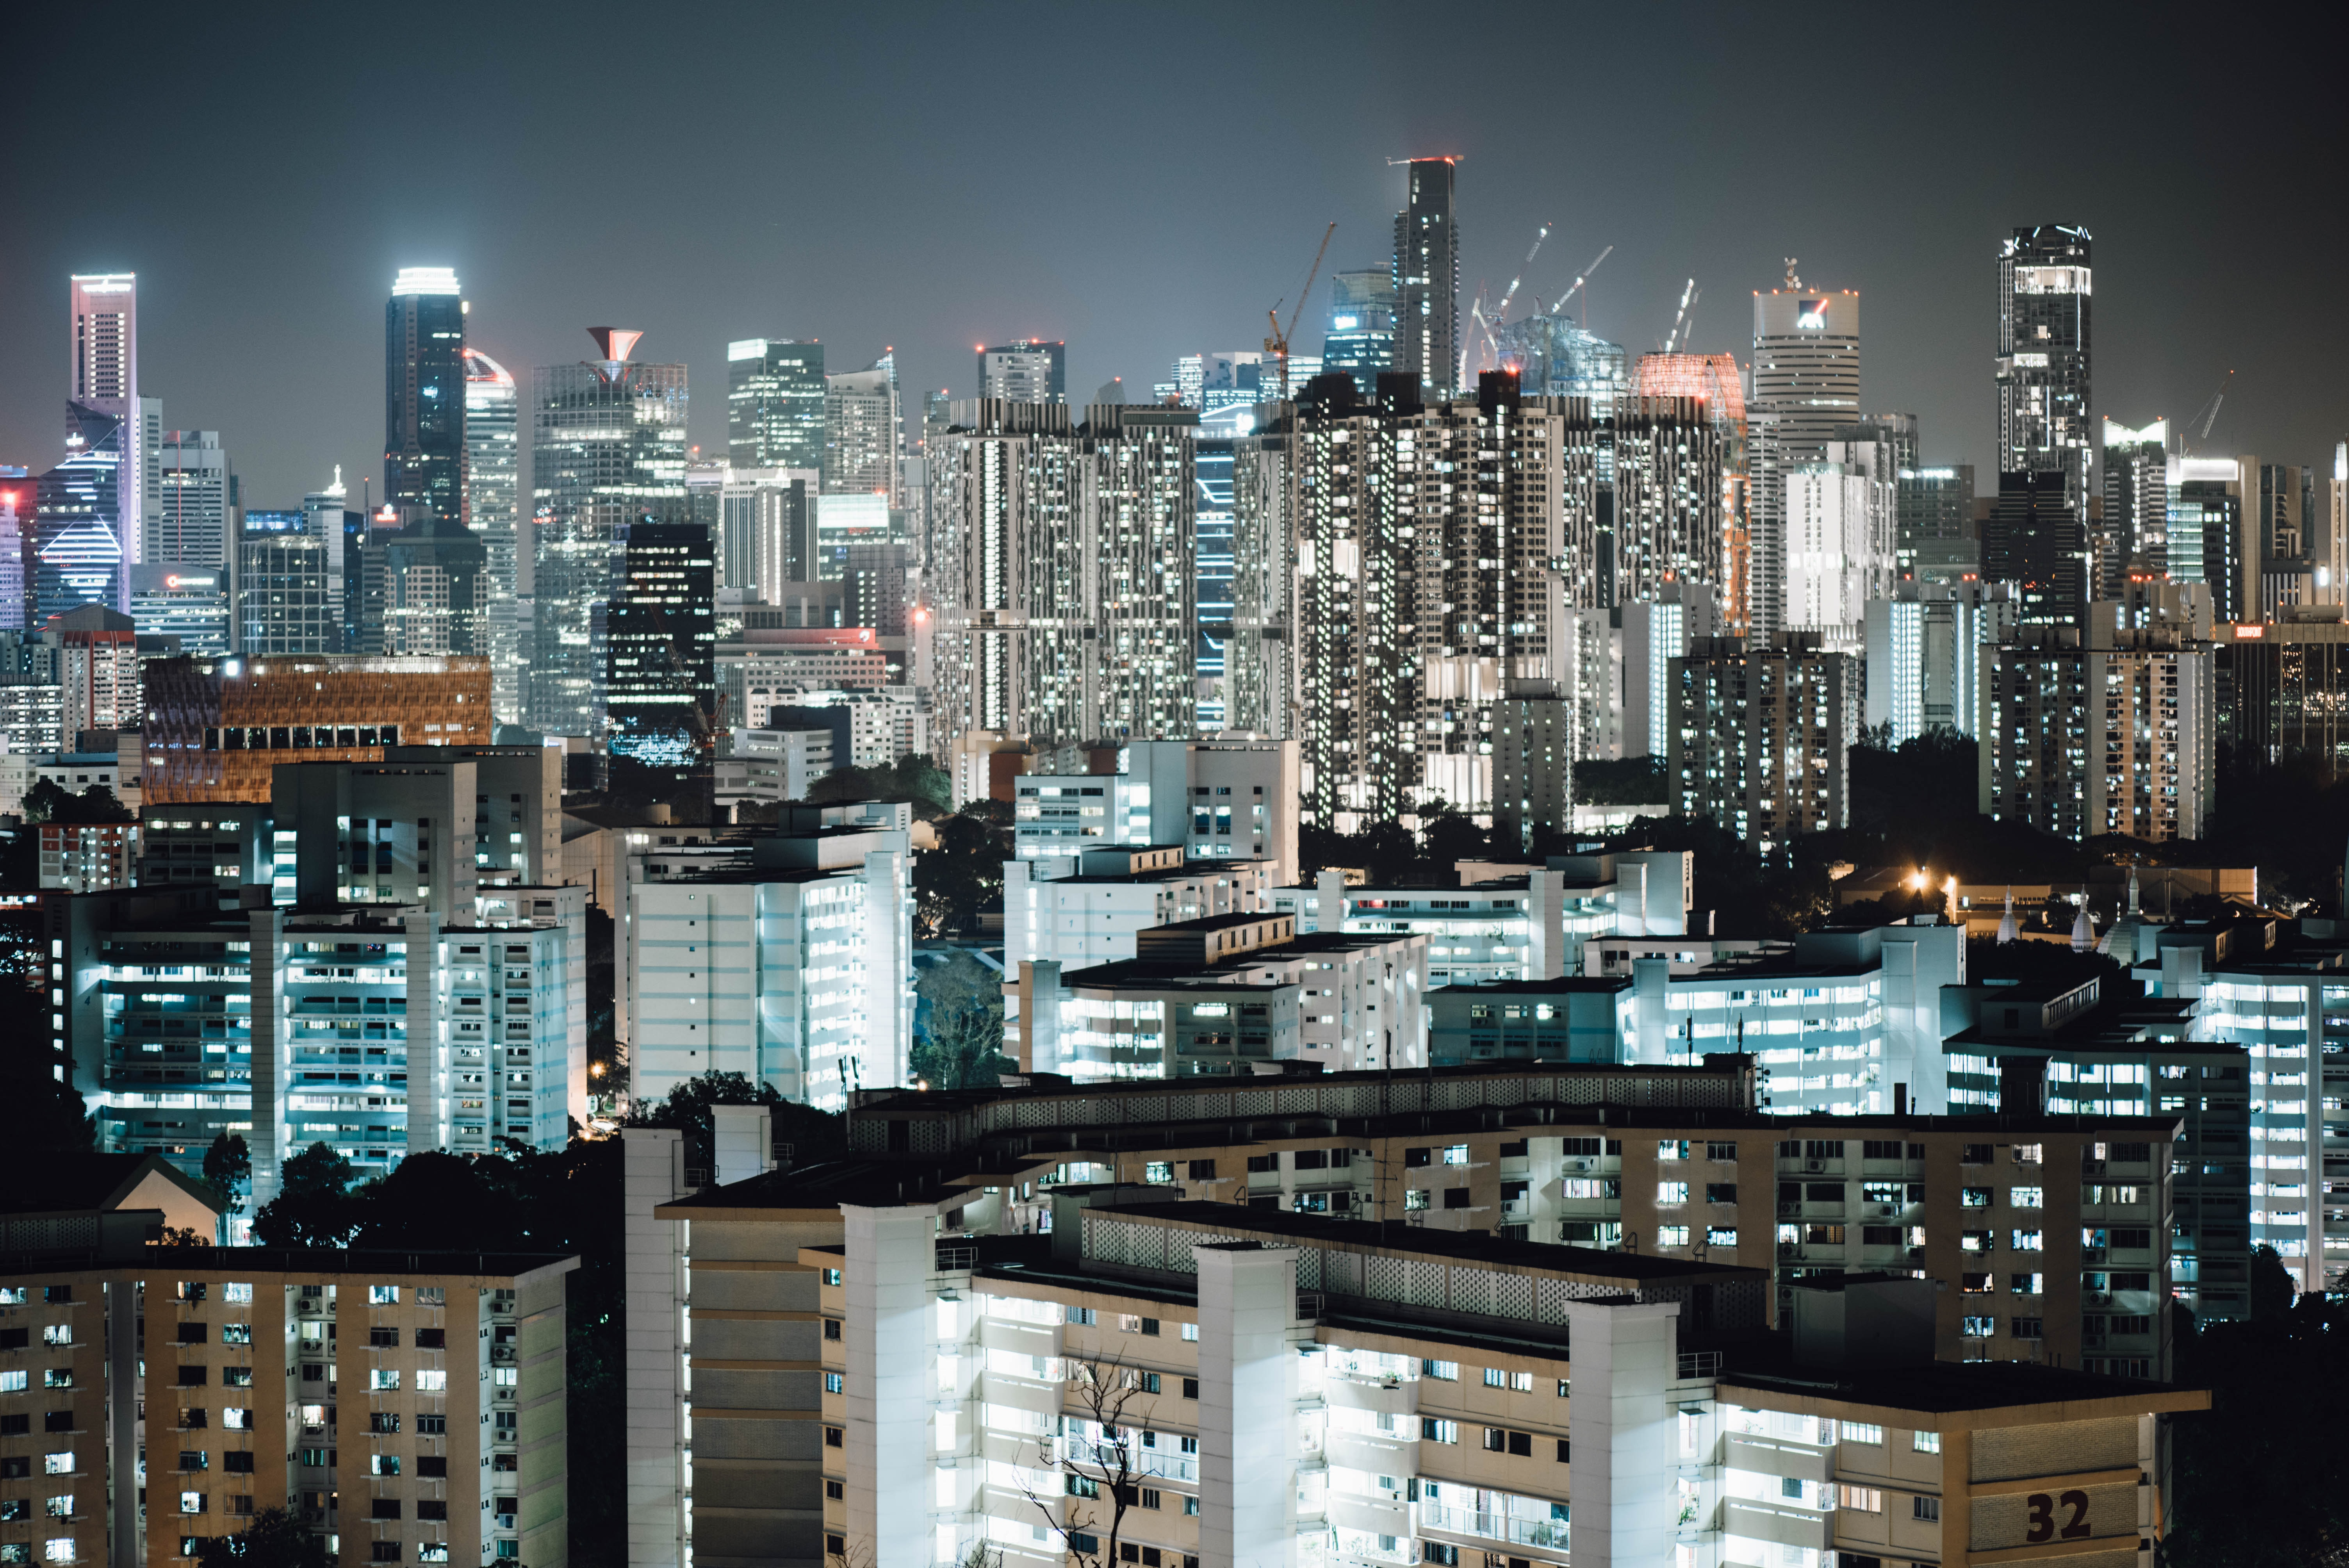 lighted city buildings during nighttime